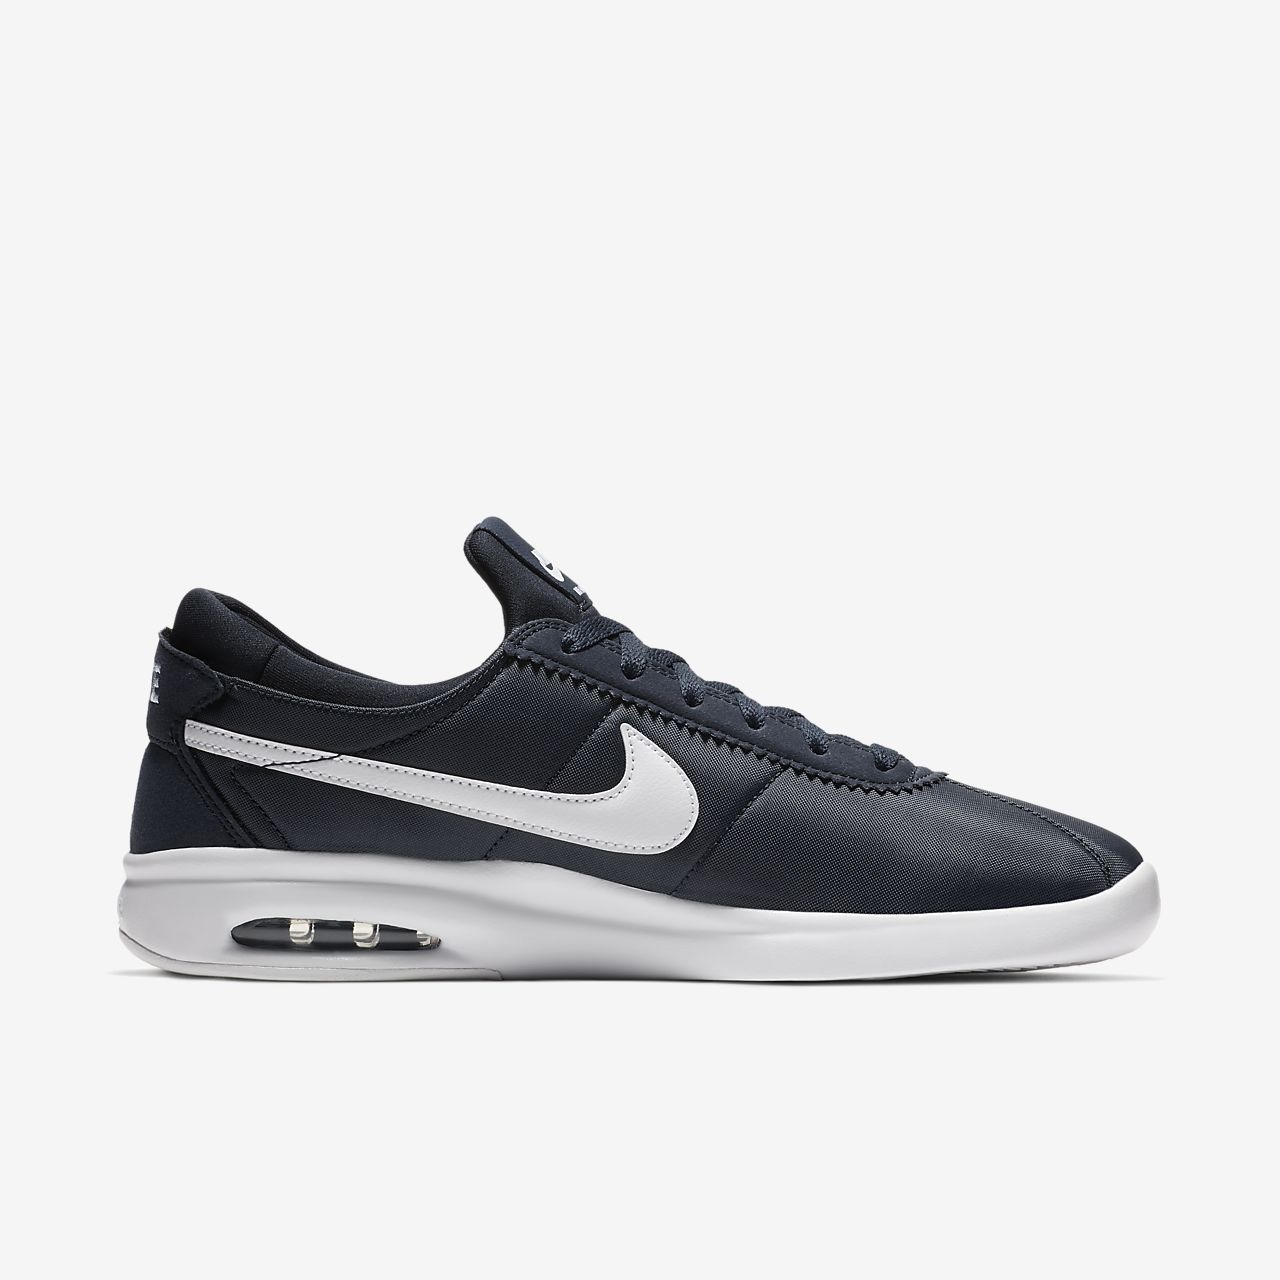 on sale 810e2 8a832 ... Nike SB Air Max Bruin Vapor Mens Skateboarding Shoe